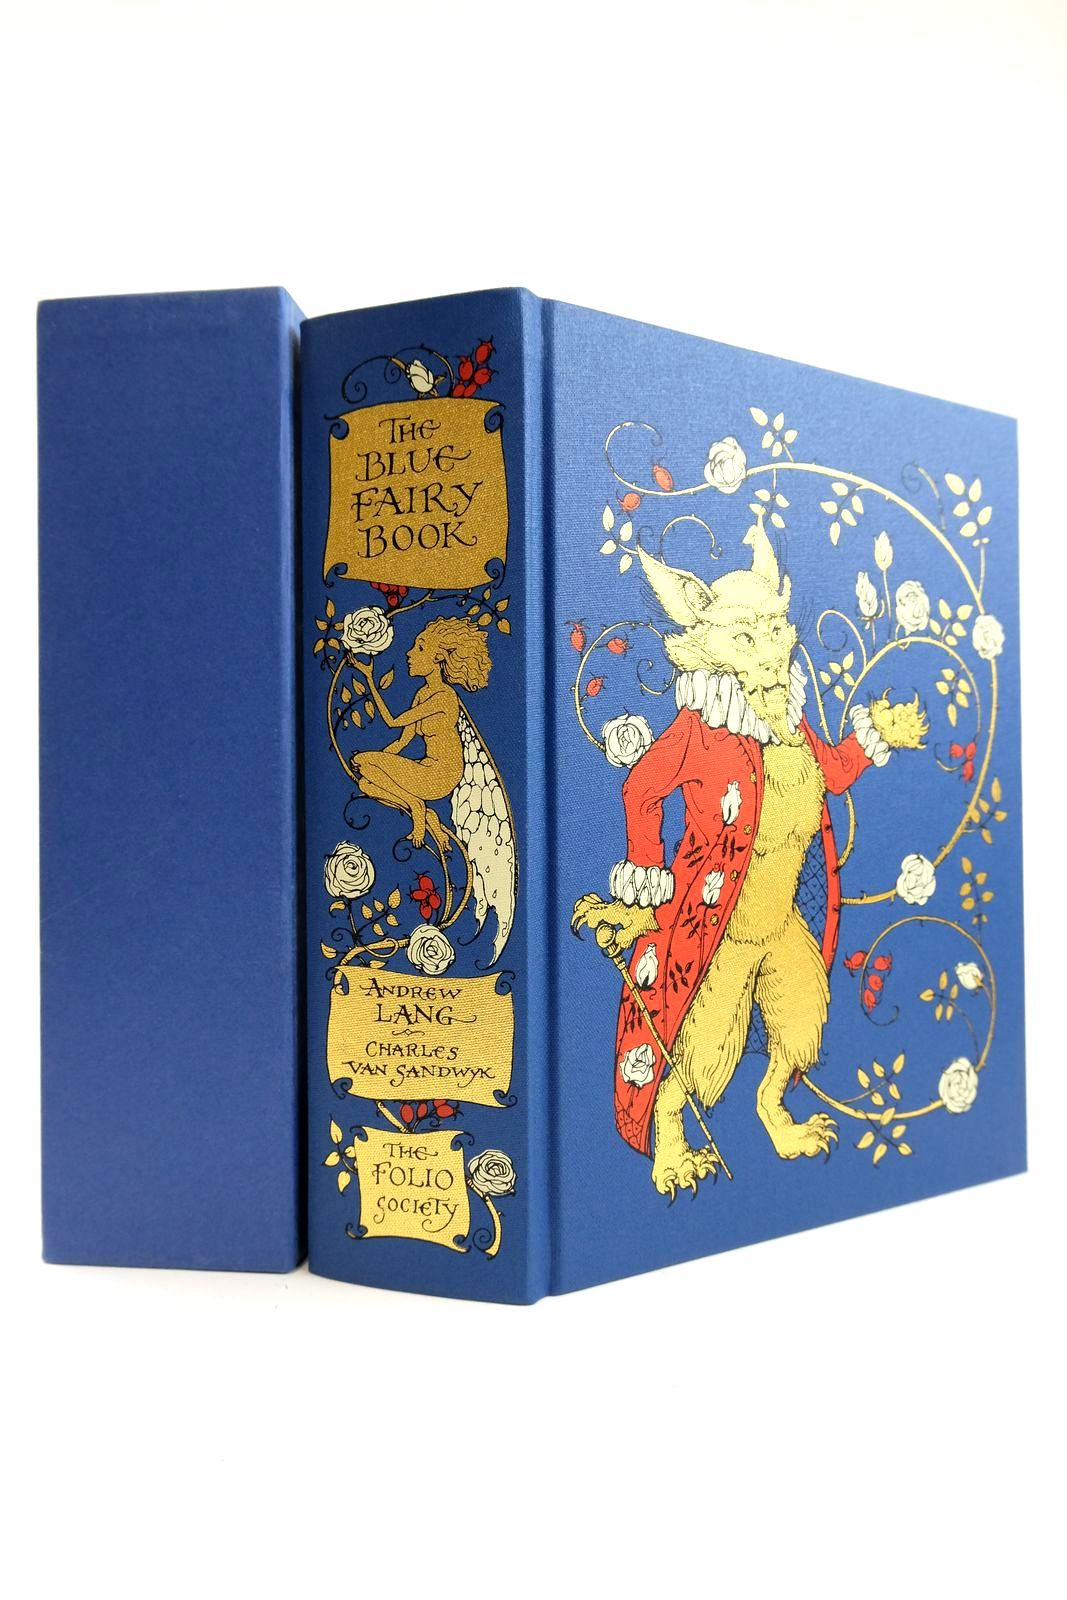 Photo of THE BLUE FAIRY BOOK written by Lang, Andrew Aiken, Joan illustrated by Van Sandwyk, Charles published by Folio Society (STOCK CODE: 2132901)  for sale by Stella & Rose's Books